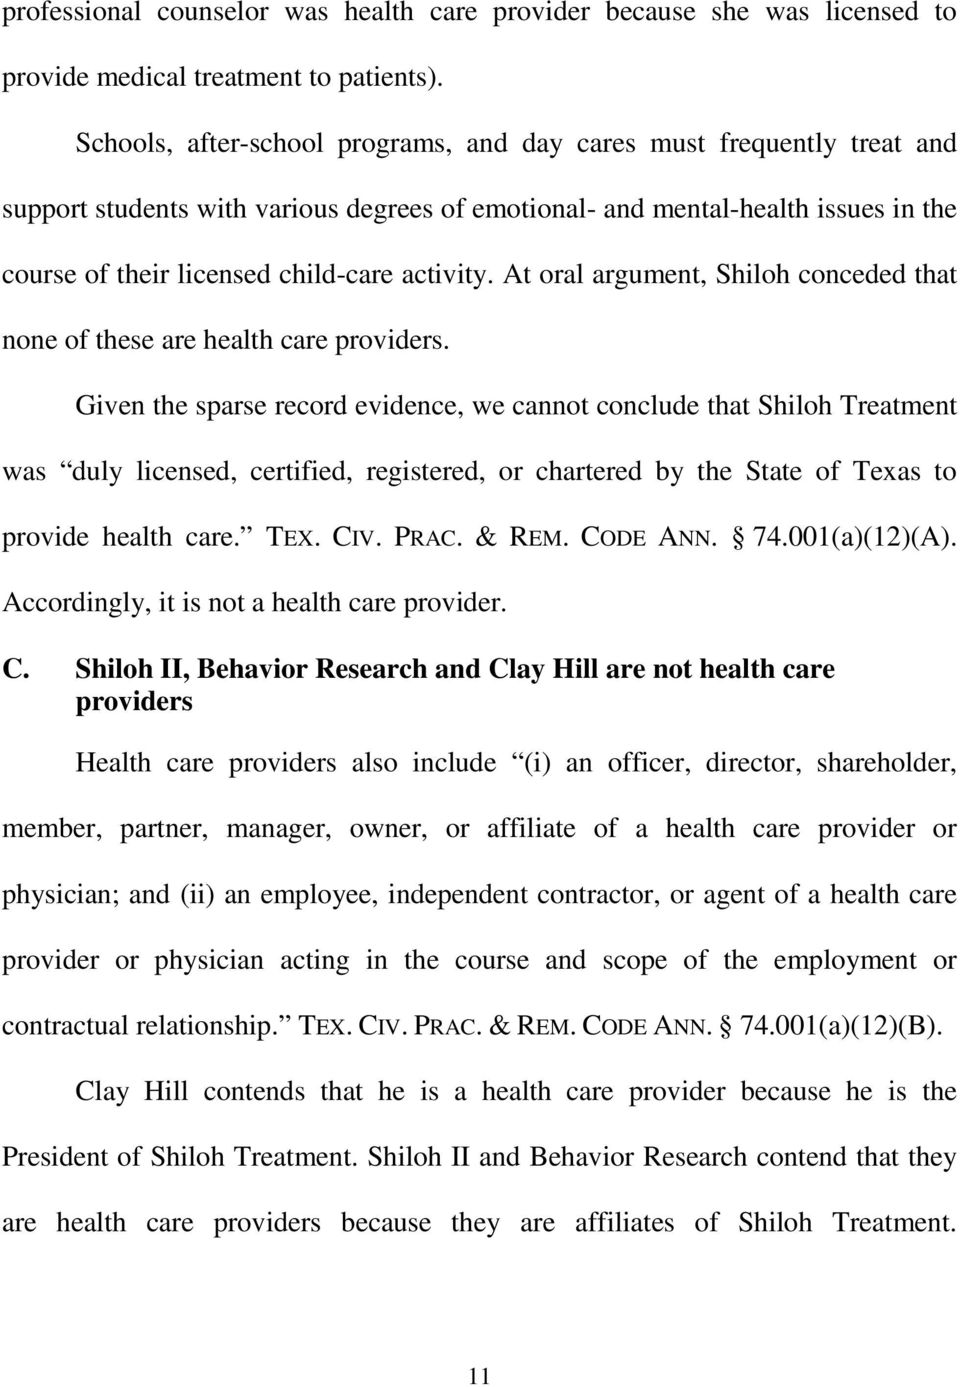 activity. At oral argument, Shiloh conceded that none of these are health care providers.